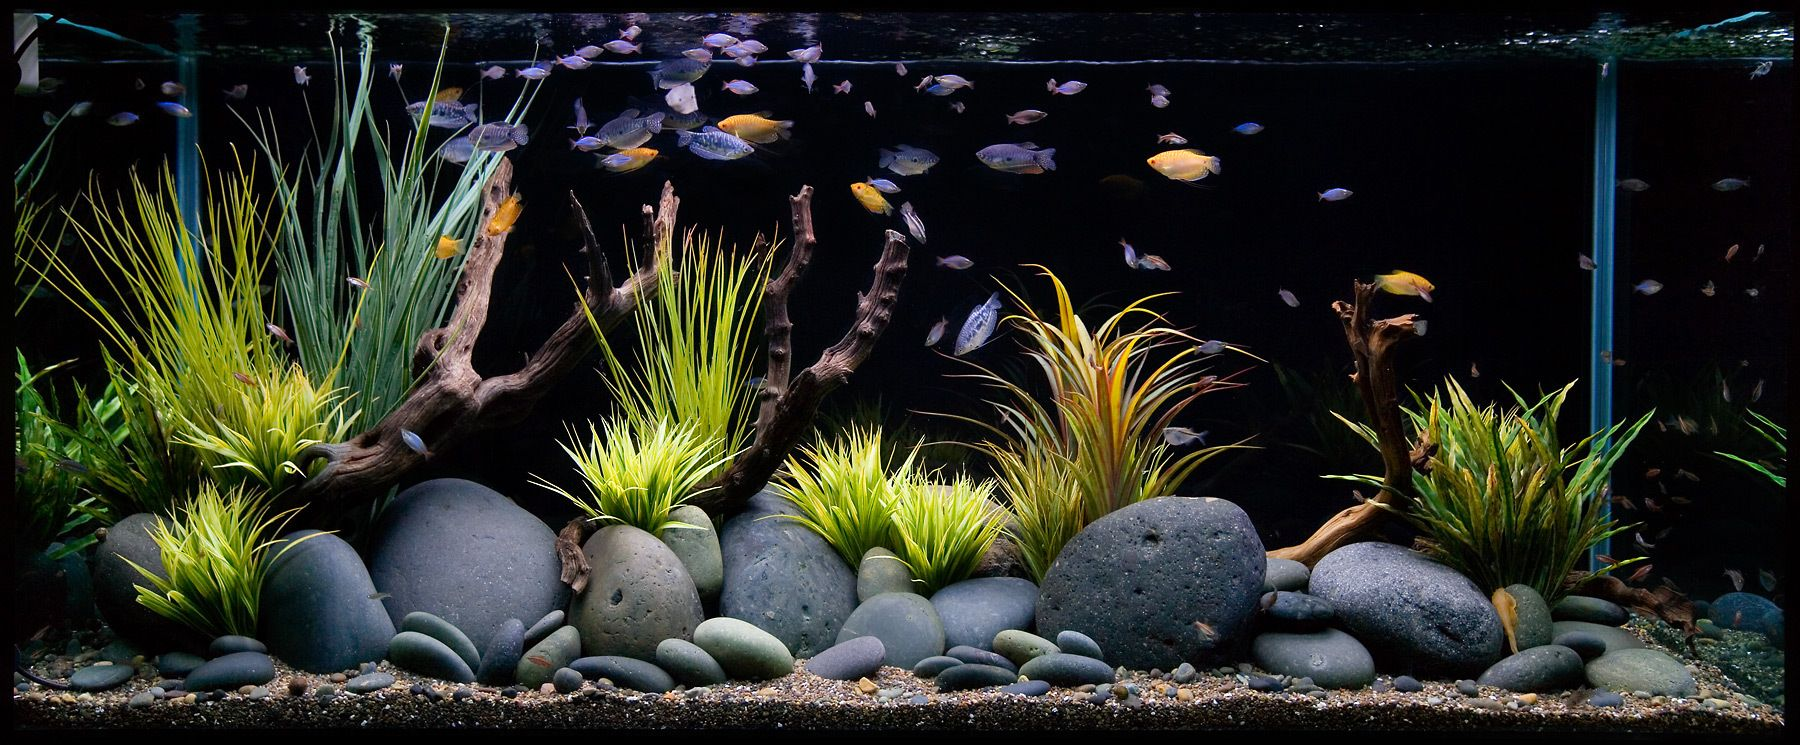 Freshwater Aquarium Design Ideas freshwater aquarium idea Aquarium Design Group An Aquascaped Aquarium Featuring Gourami Aquarium Pinterest Aquarium Aquarium Design And Freshwater Aquarium